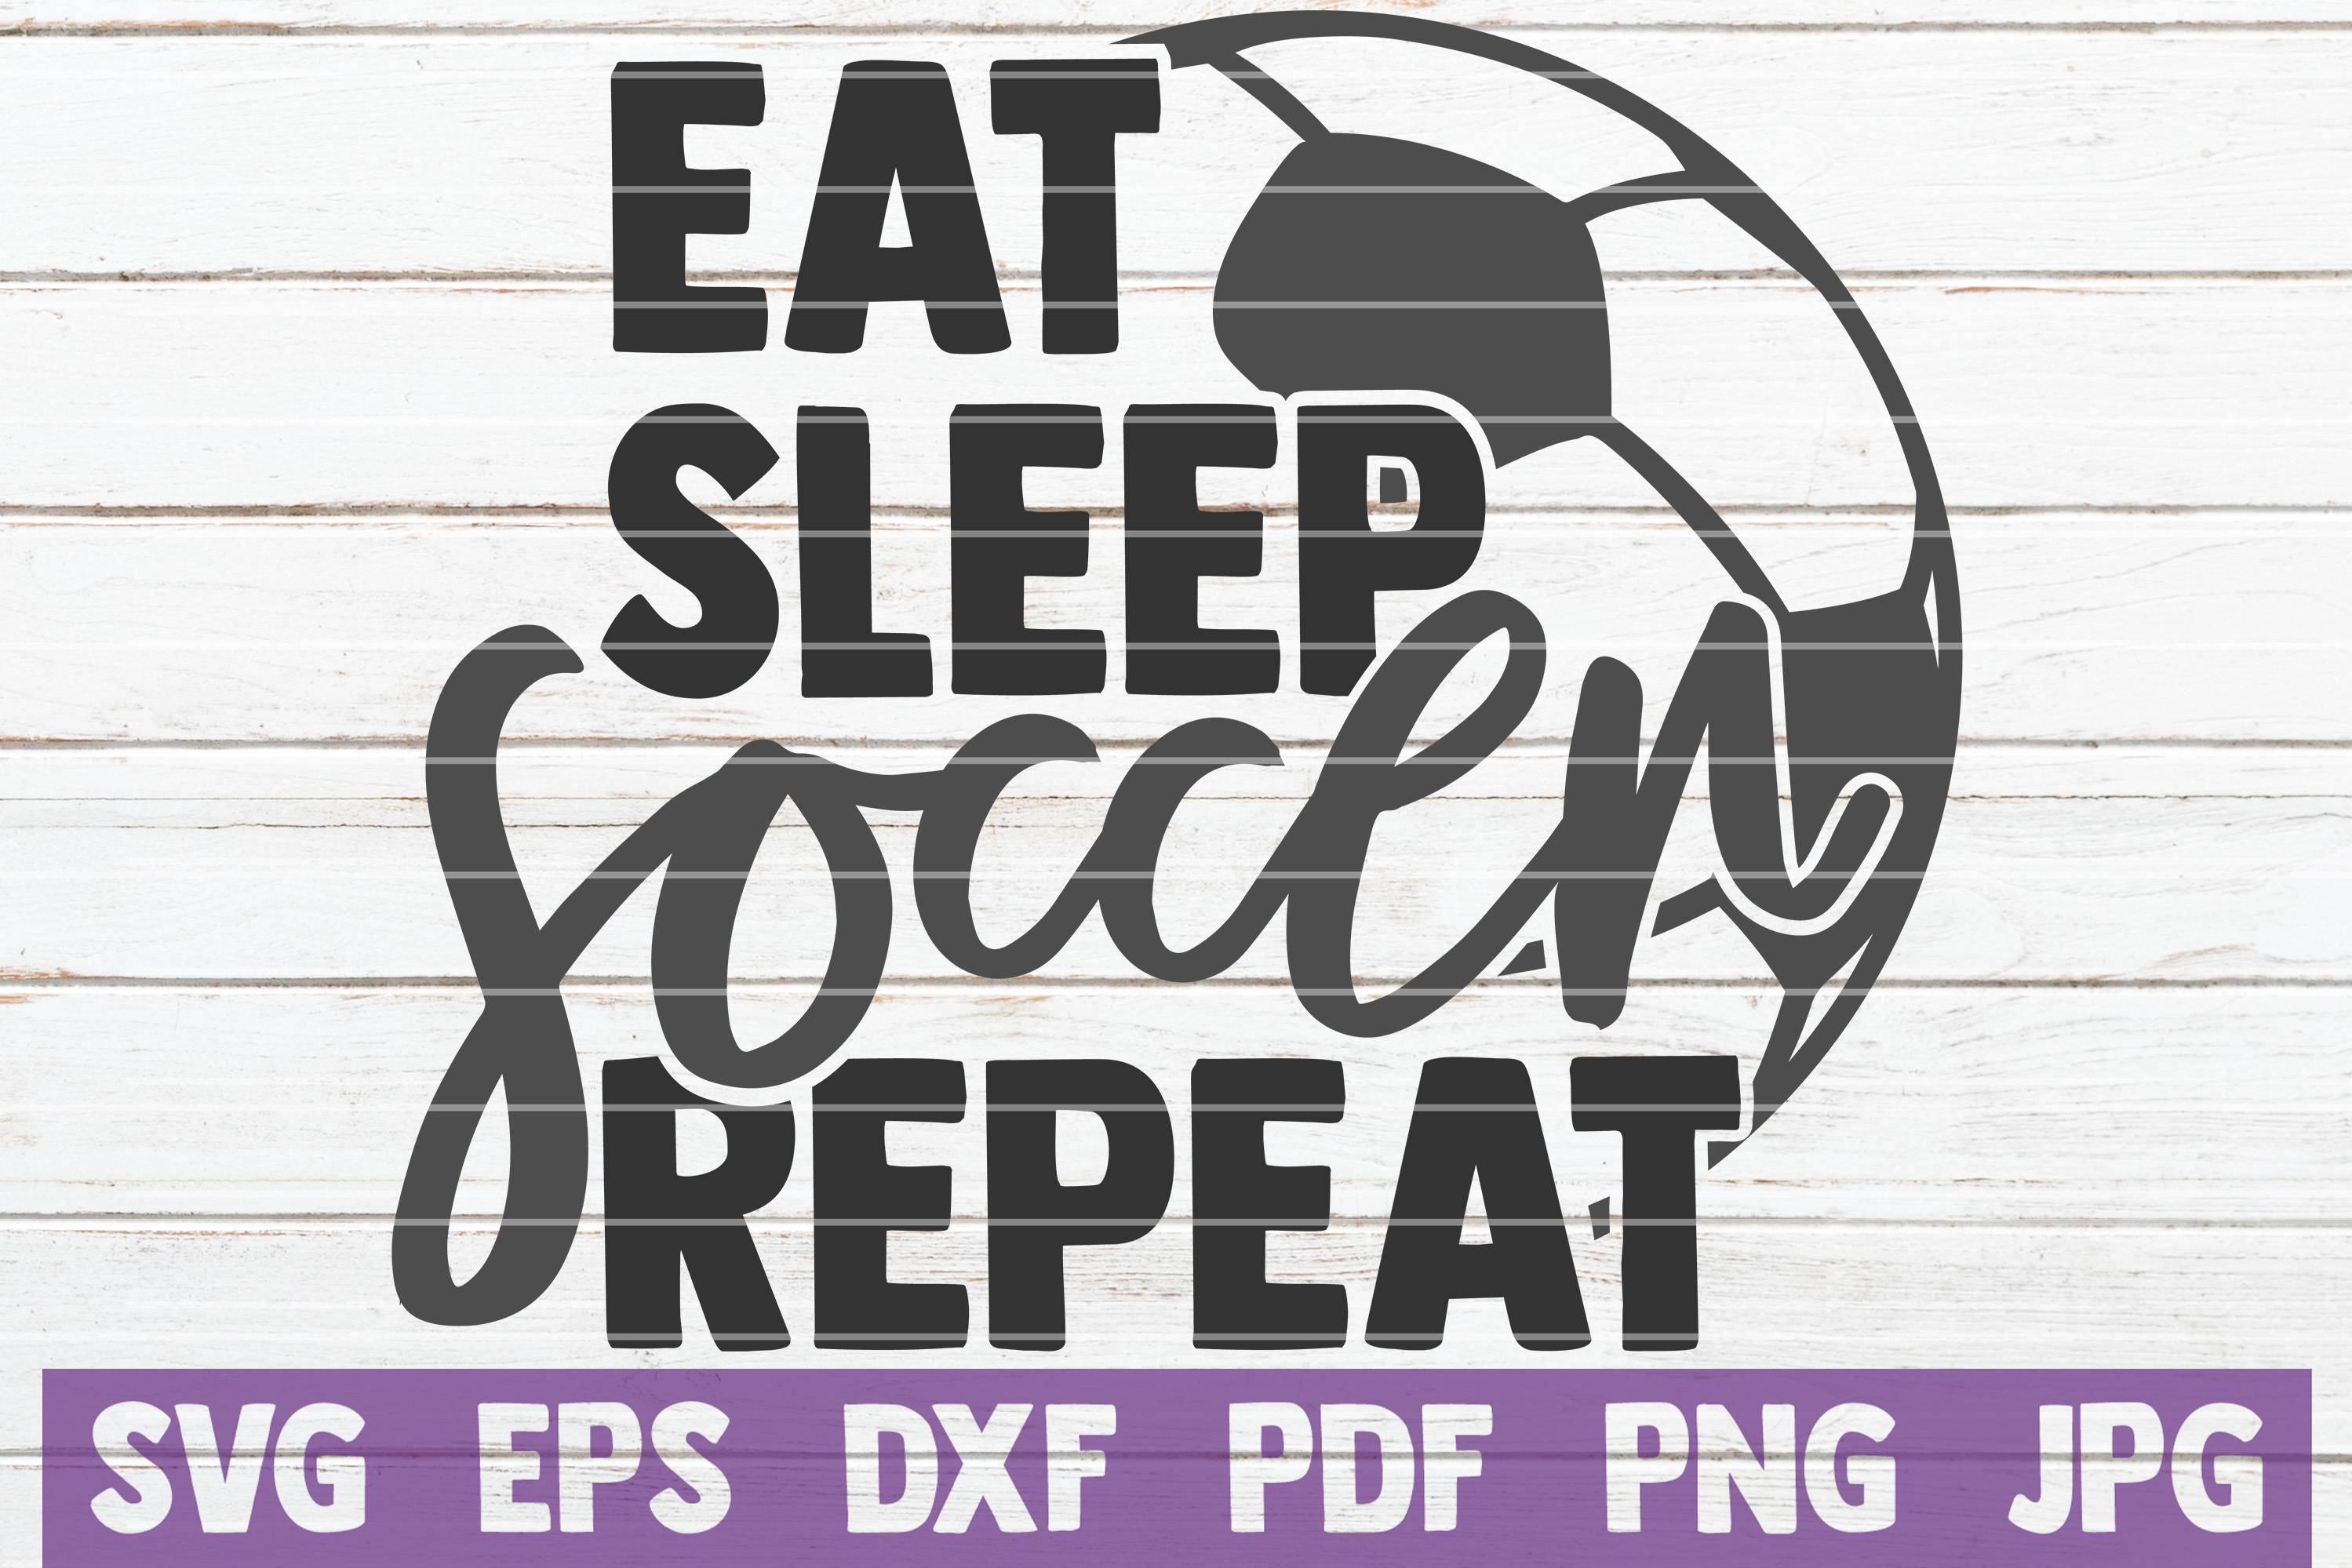 Eat Sleep Soccer Repeat SVG Cut File | commercial use example image 1